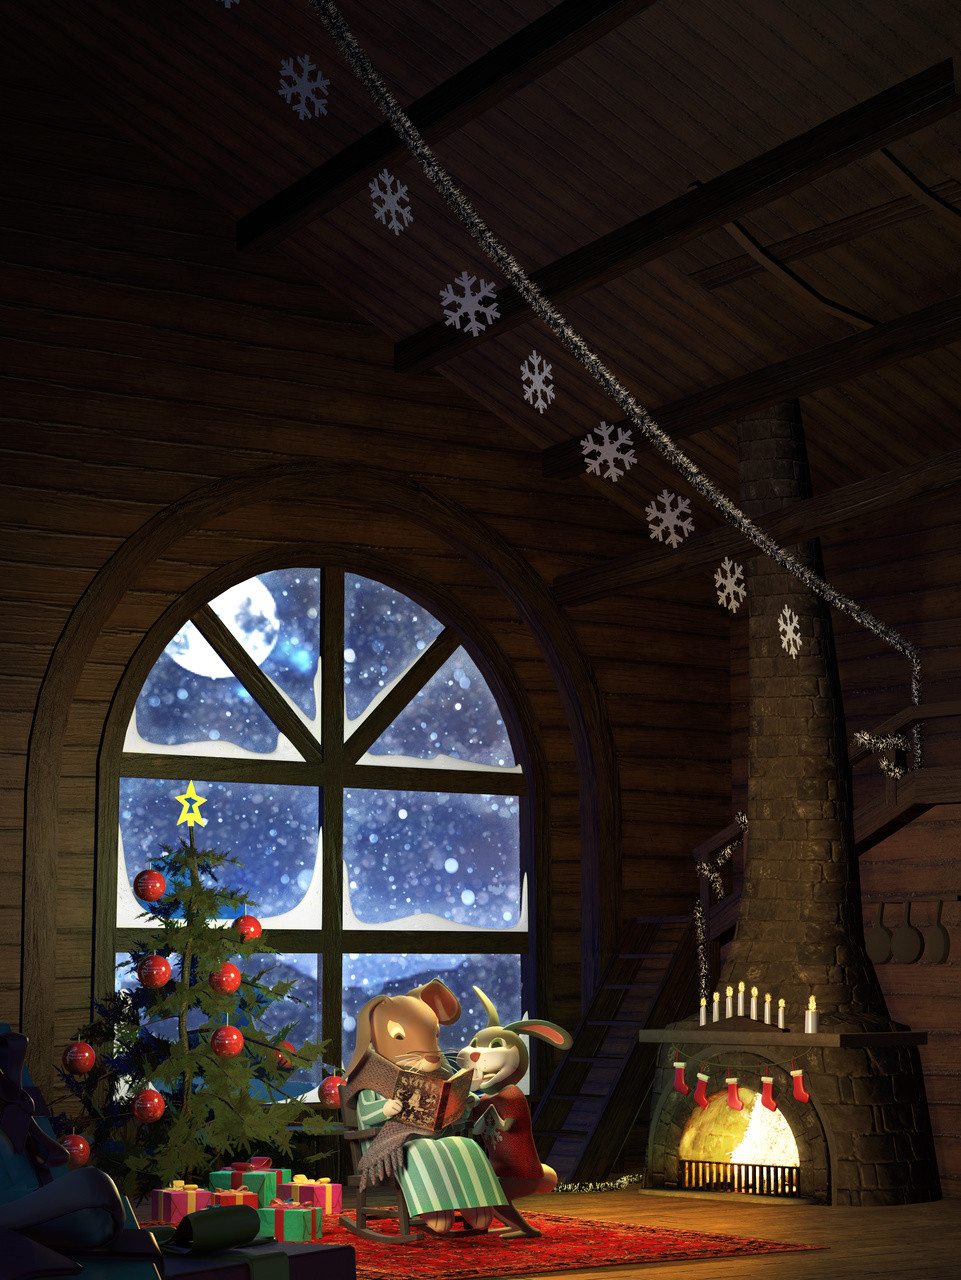 Christmas card 2015 project: Fairy tale moment